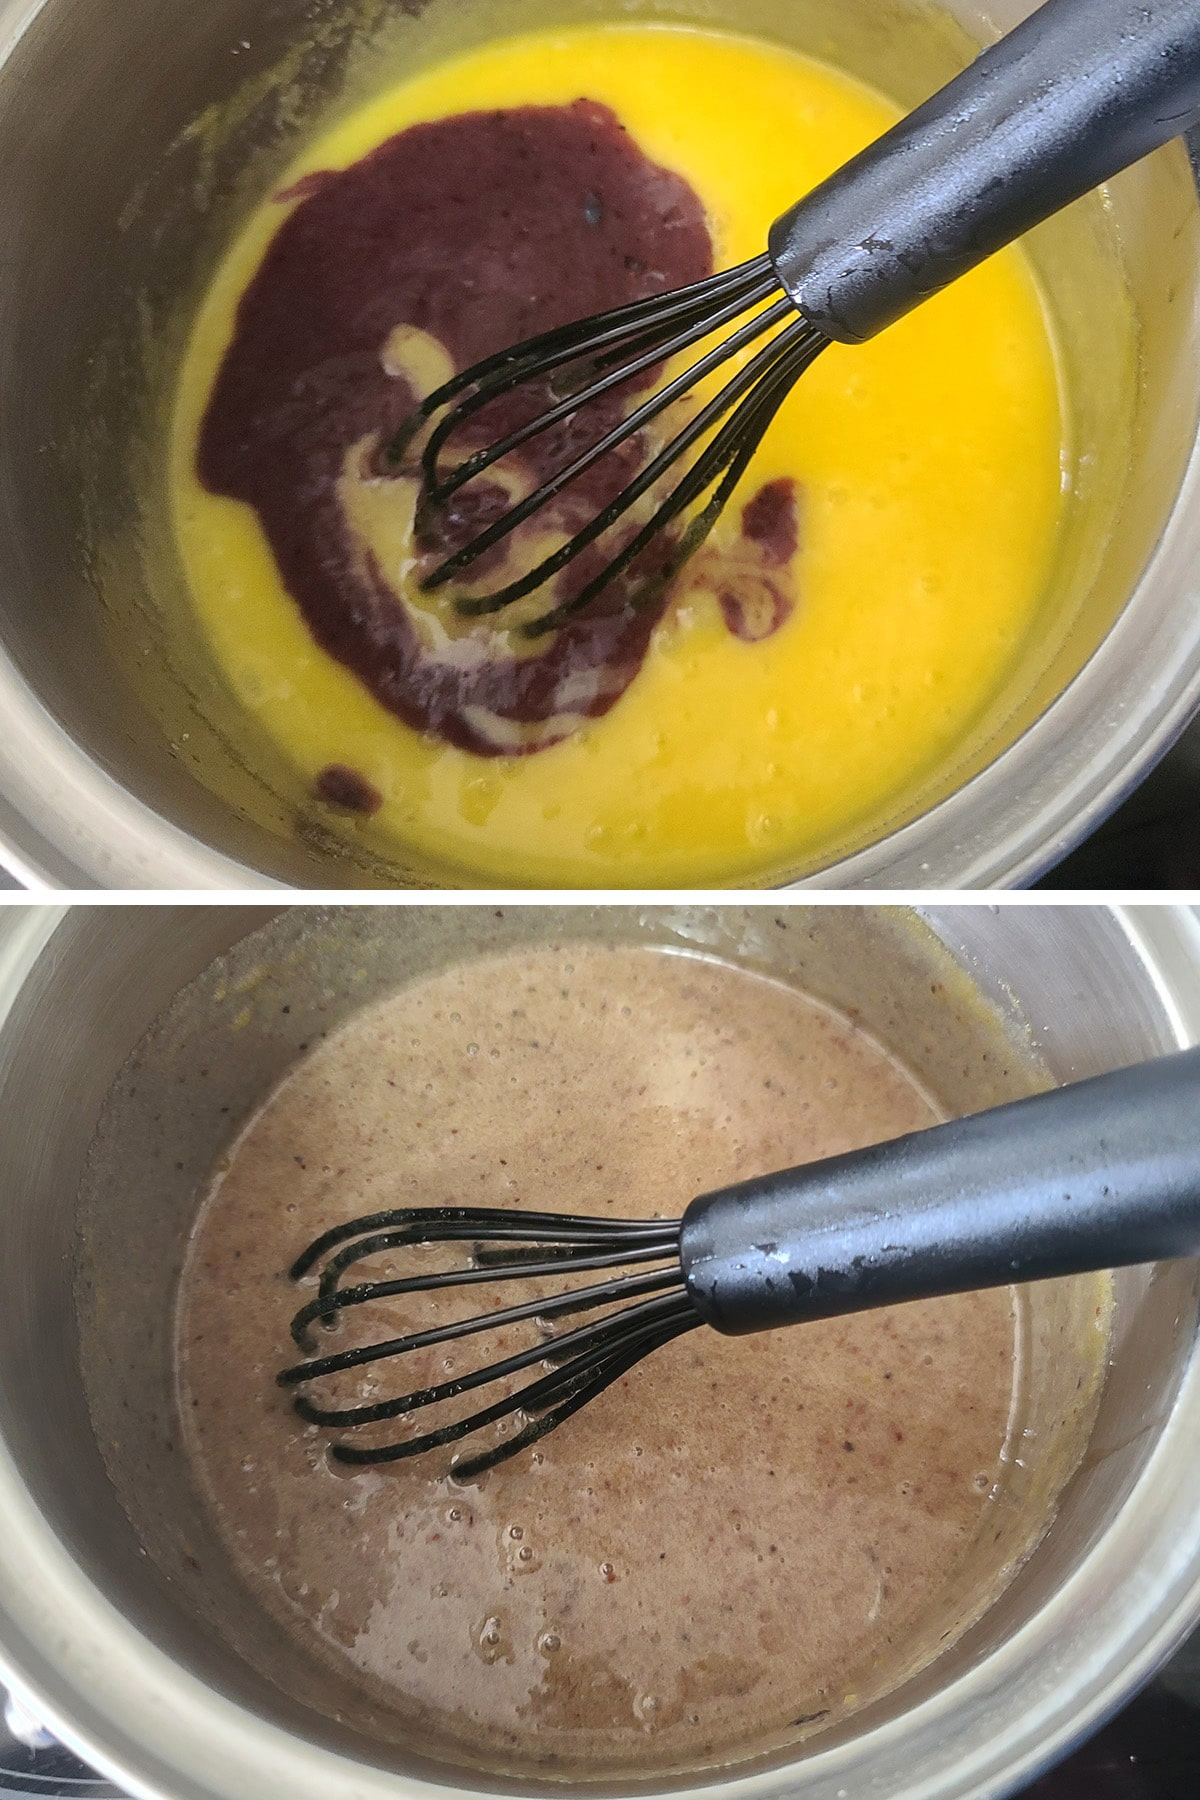 Blueberry puree being added to the pot and whisked in.